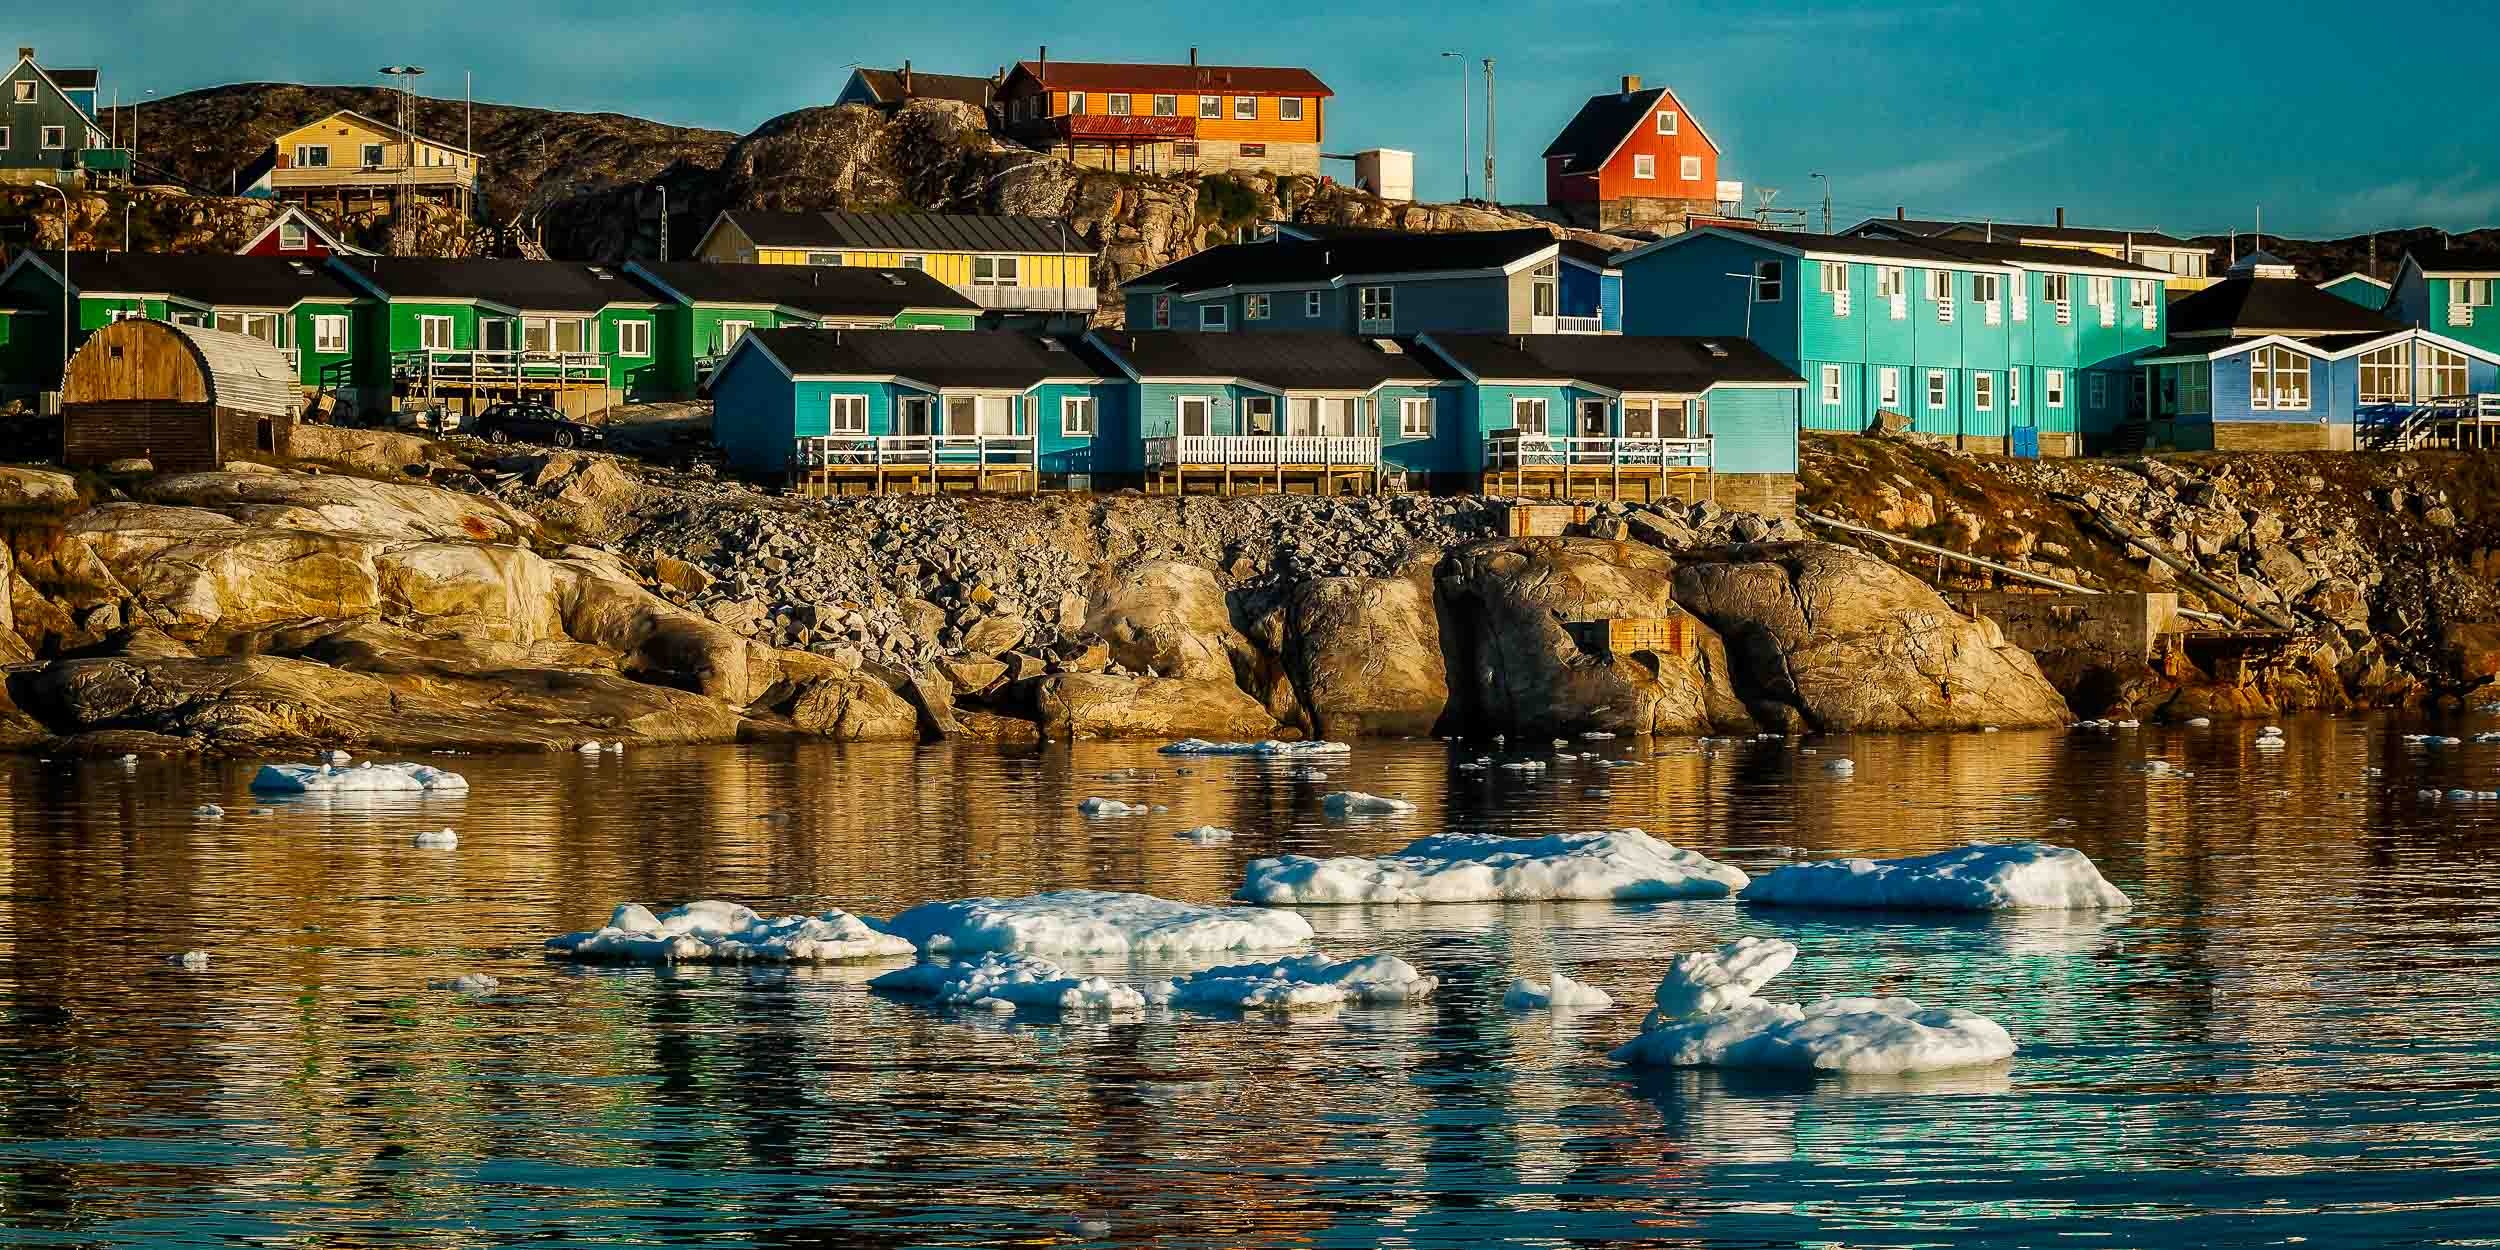 Colorful accommodation  overlooking the waters of the  Ilulissat Icefjord  in  Ilulissat, Greenland .